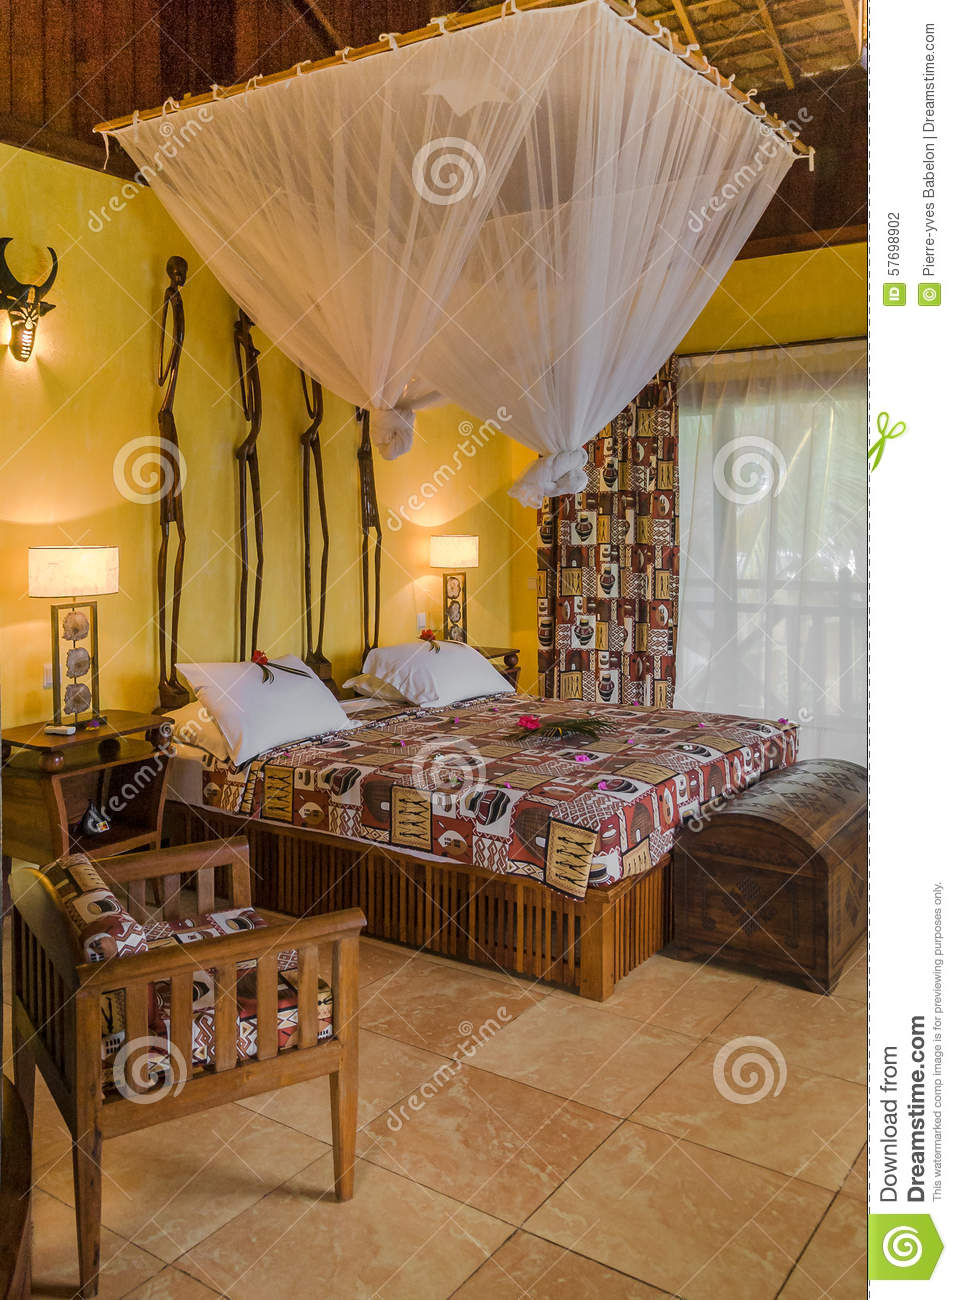 Hotel Room Furniture: Luxury Hotel Room Stock Photo. Image Of Furniture, Holiday